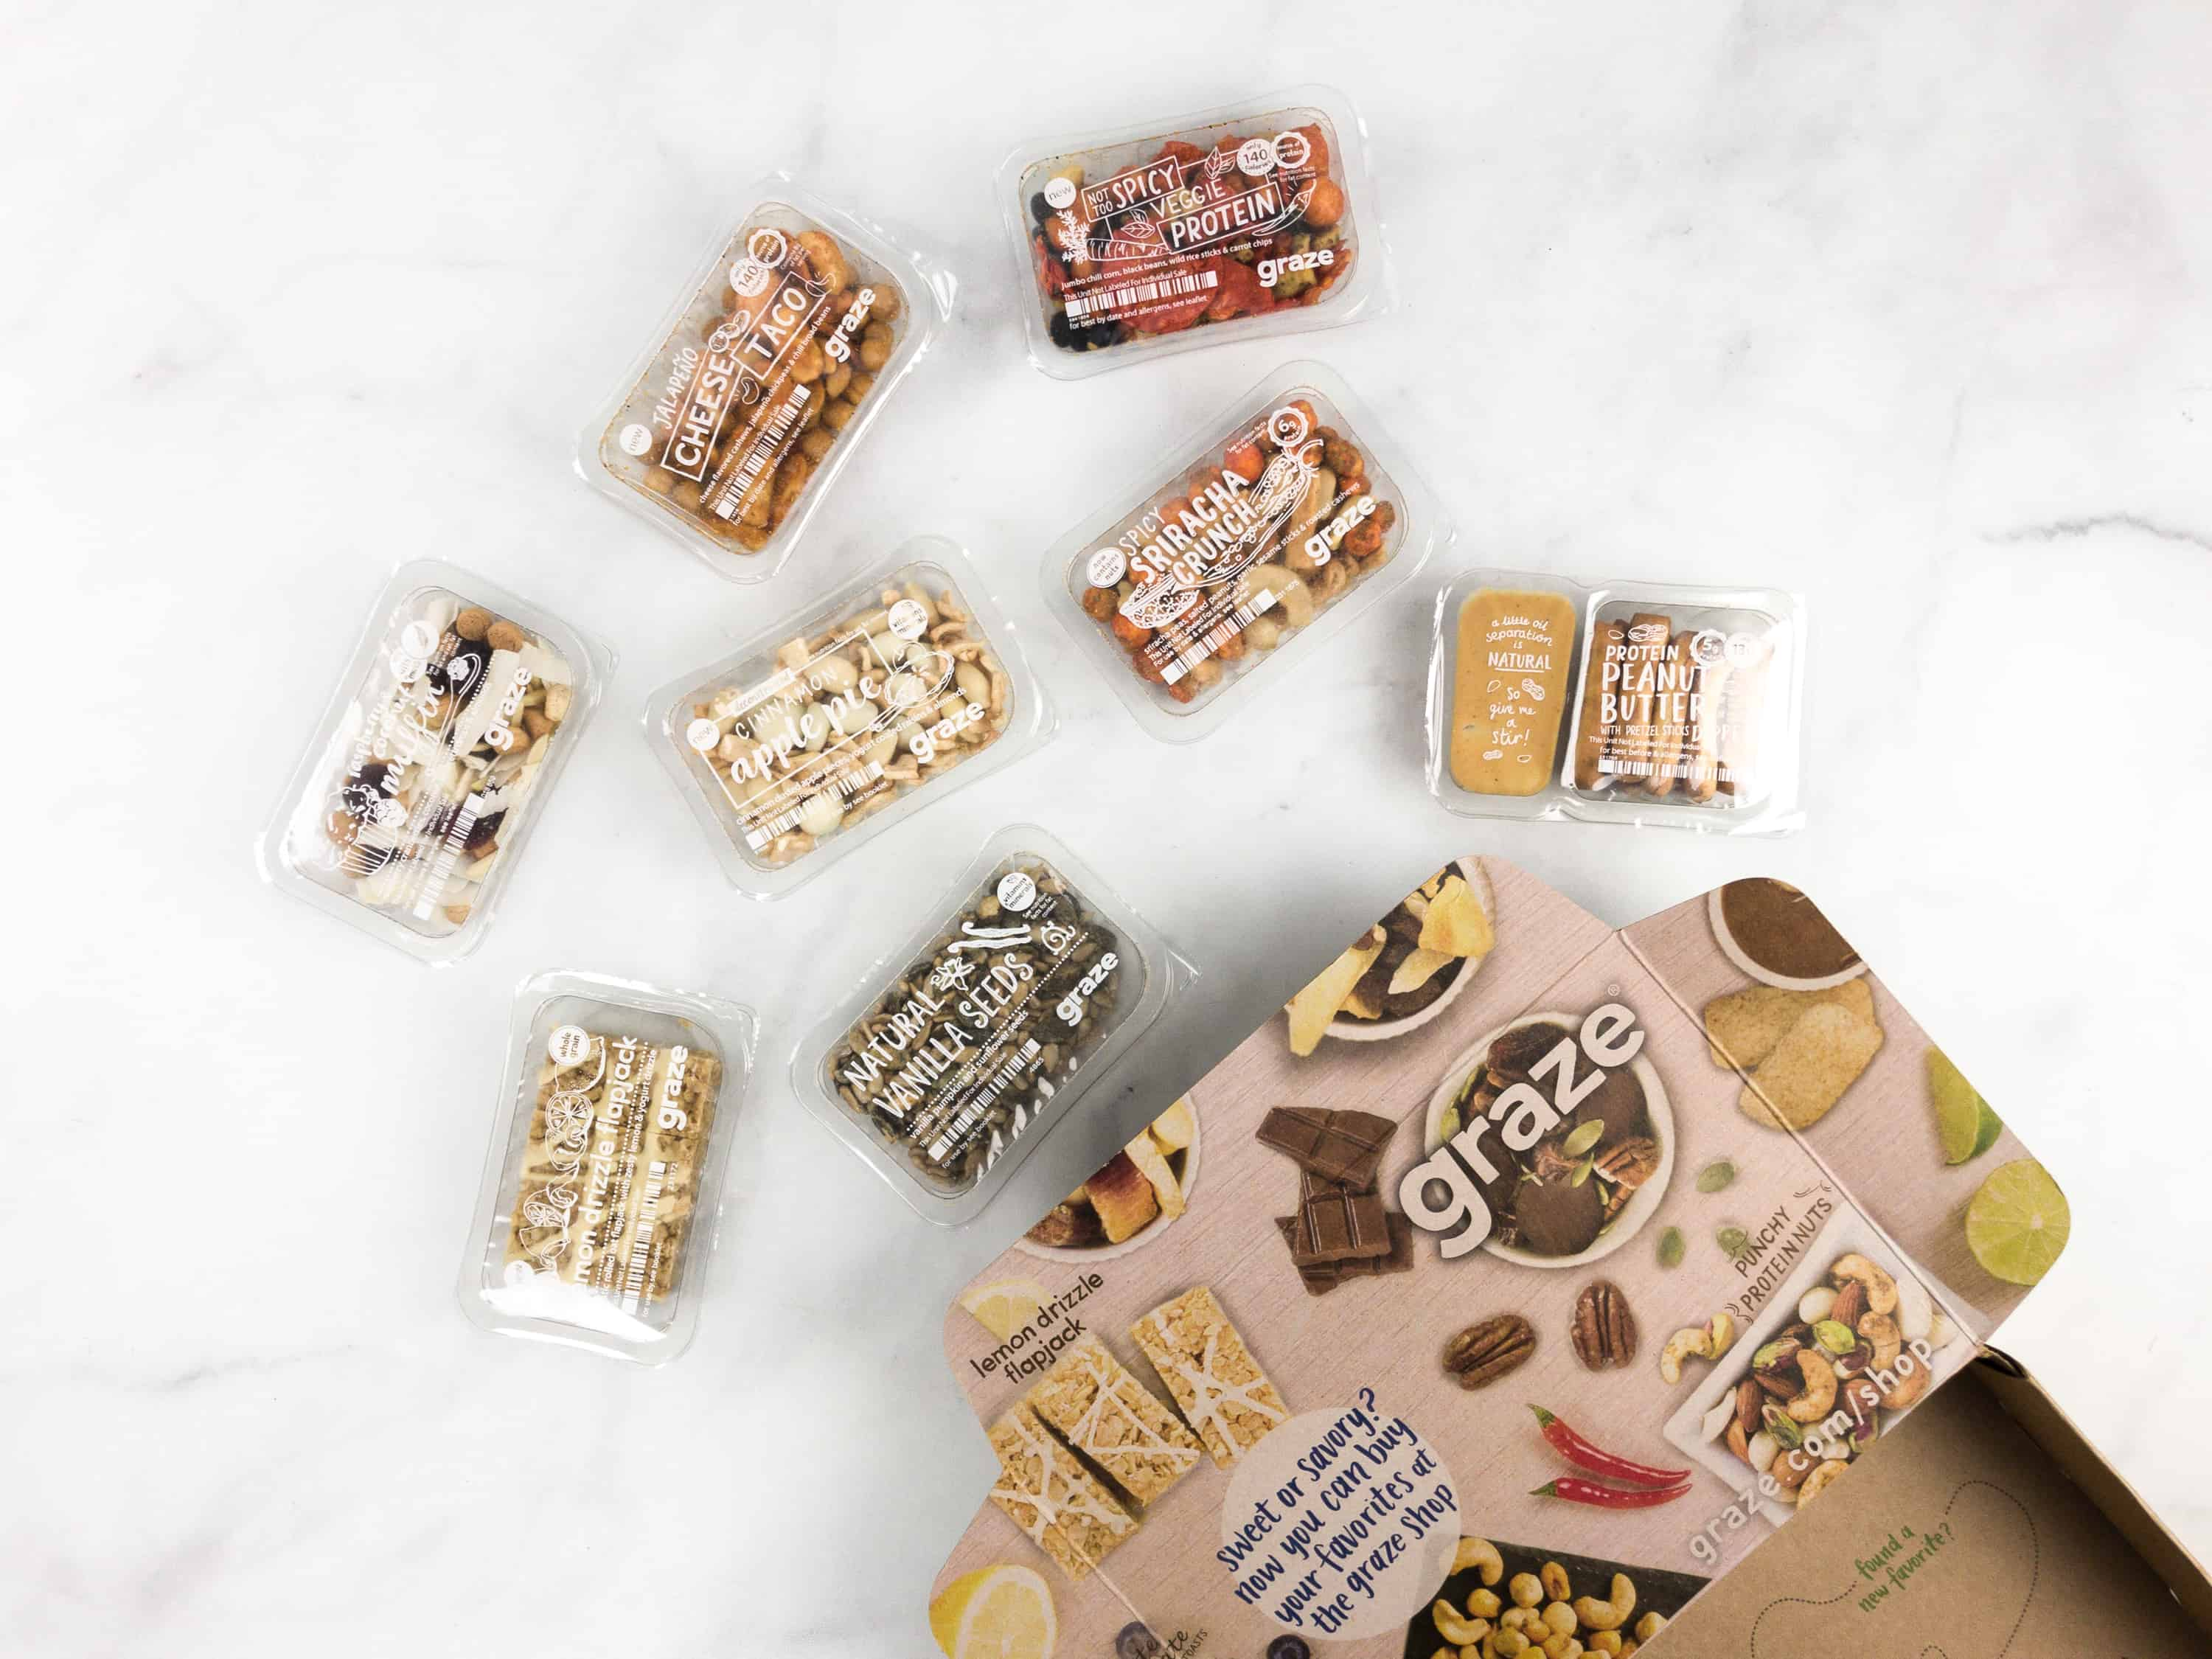 Graze Variety Box Review & Free Box Coupon – March 2018